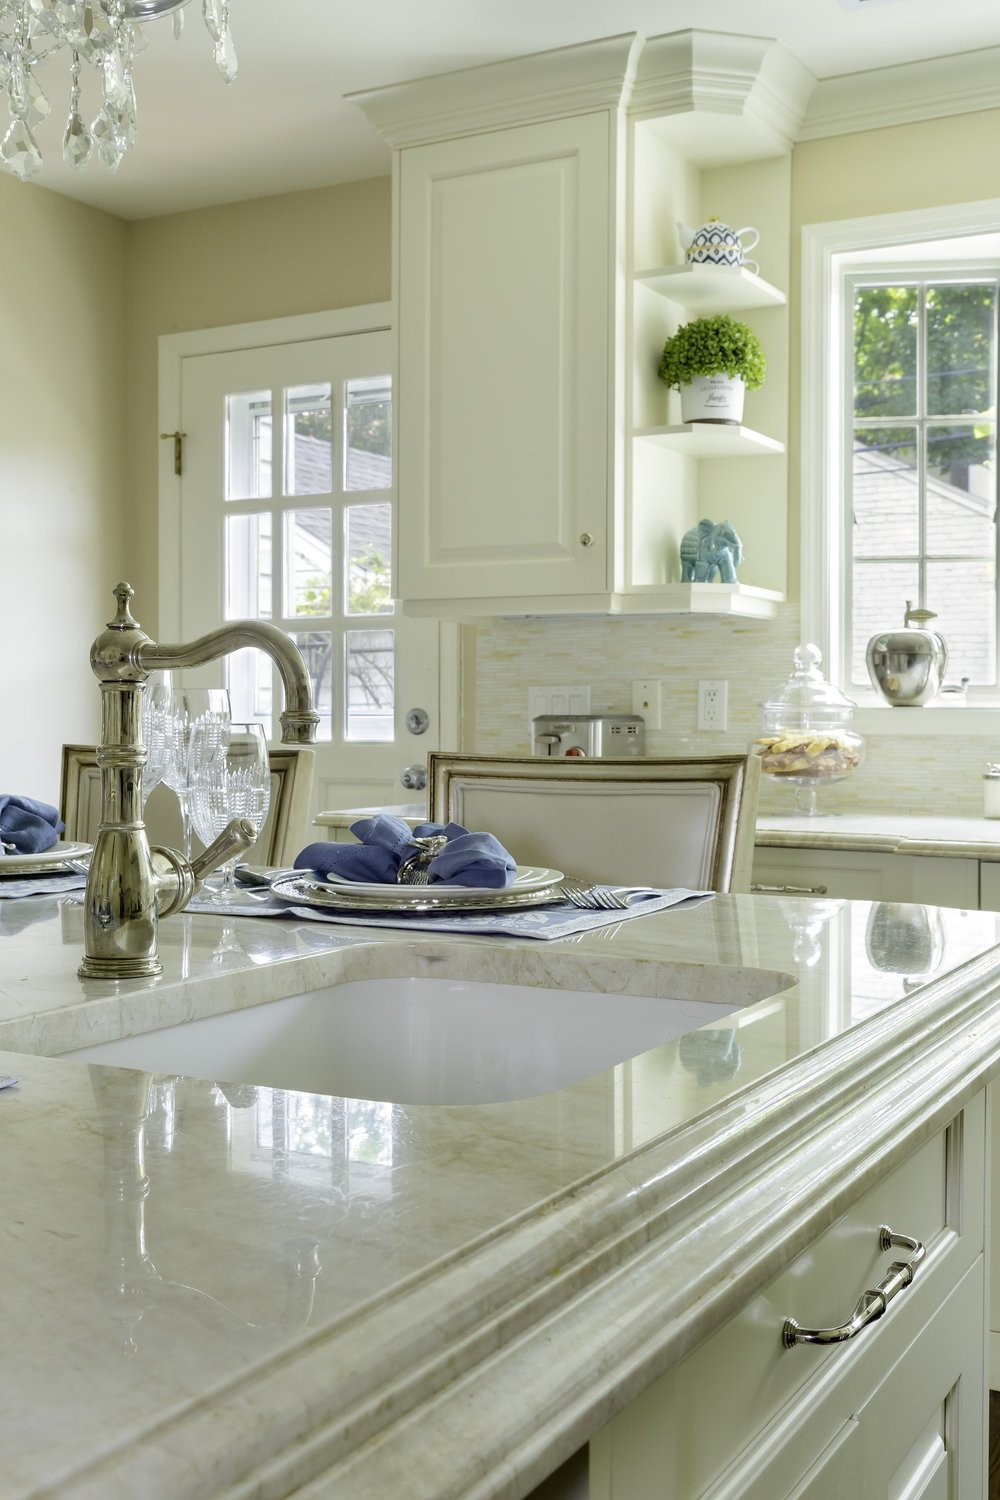 Traditional style kitchen with vintage faucet in the center island